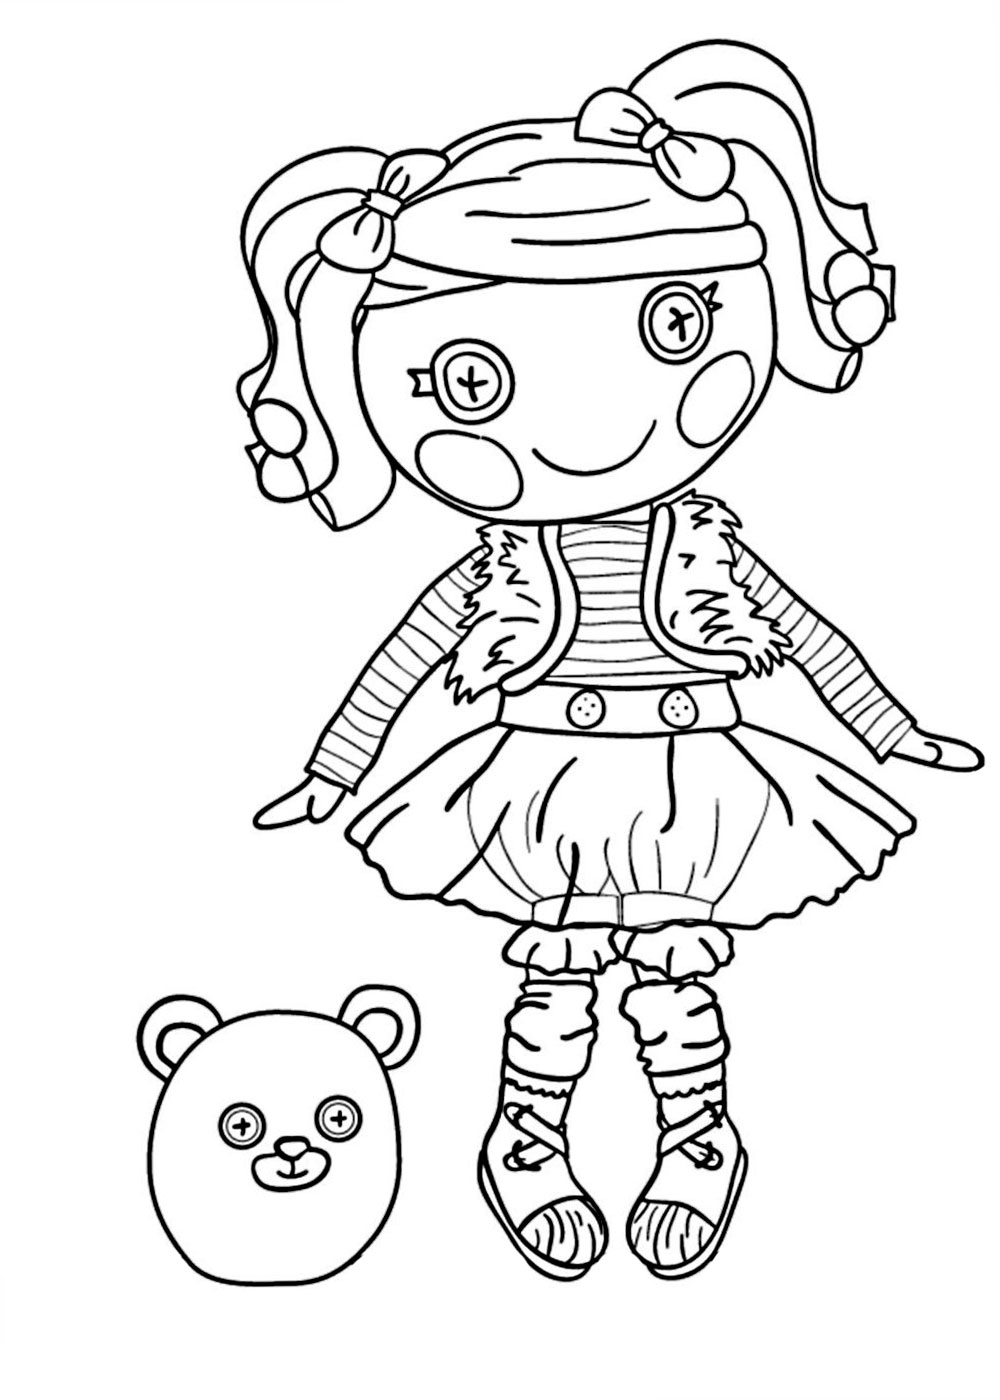 lalaloopsy babies coloring pages - photo#14